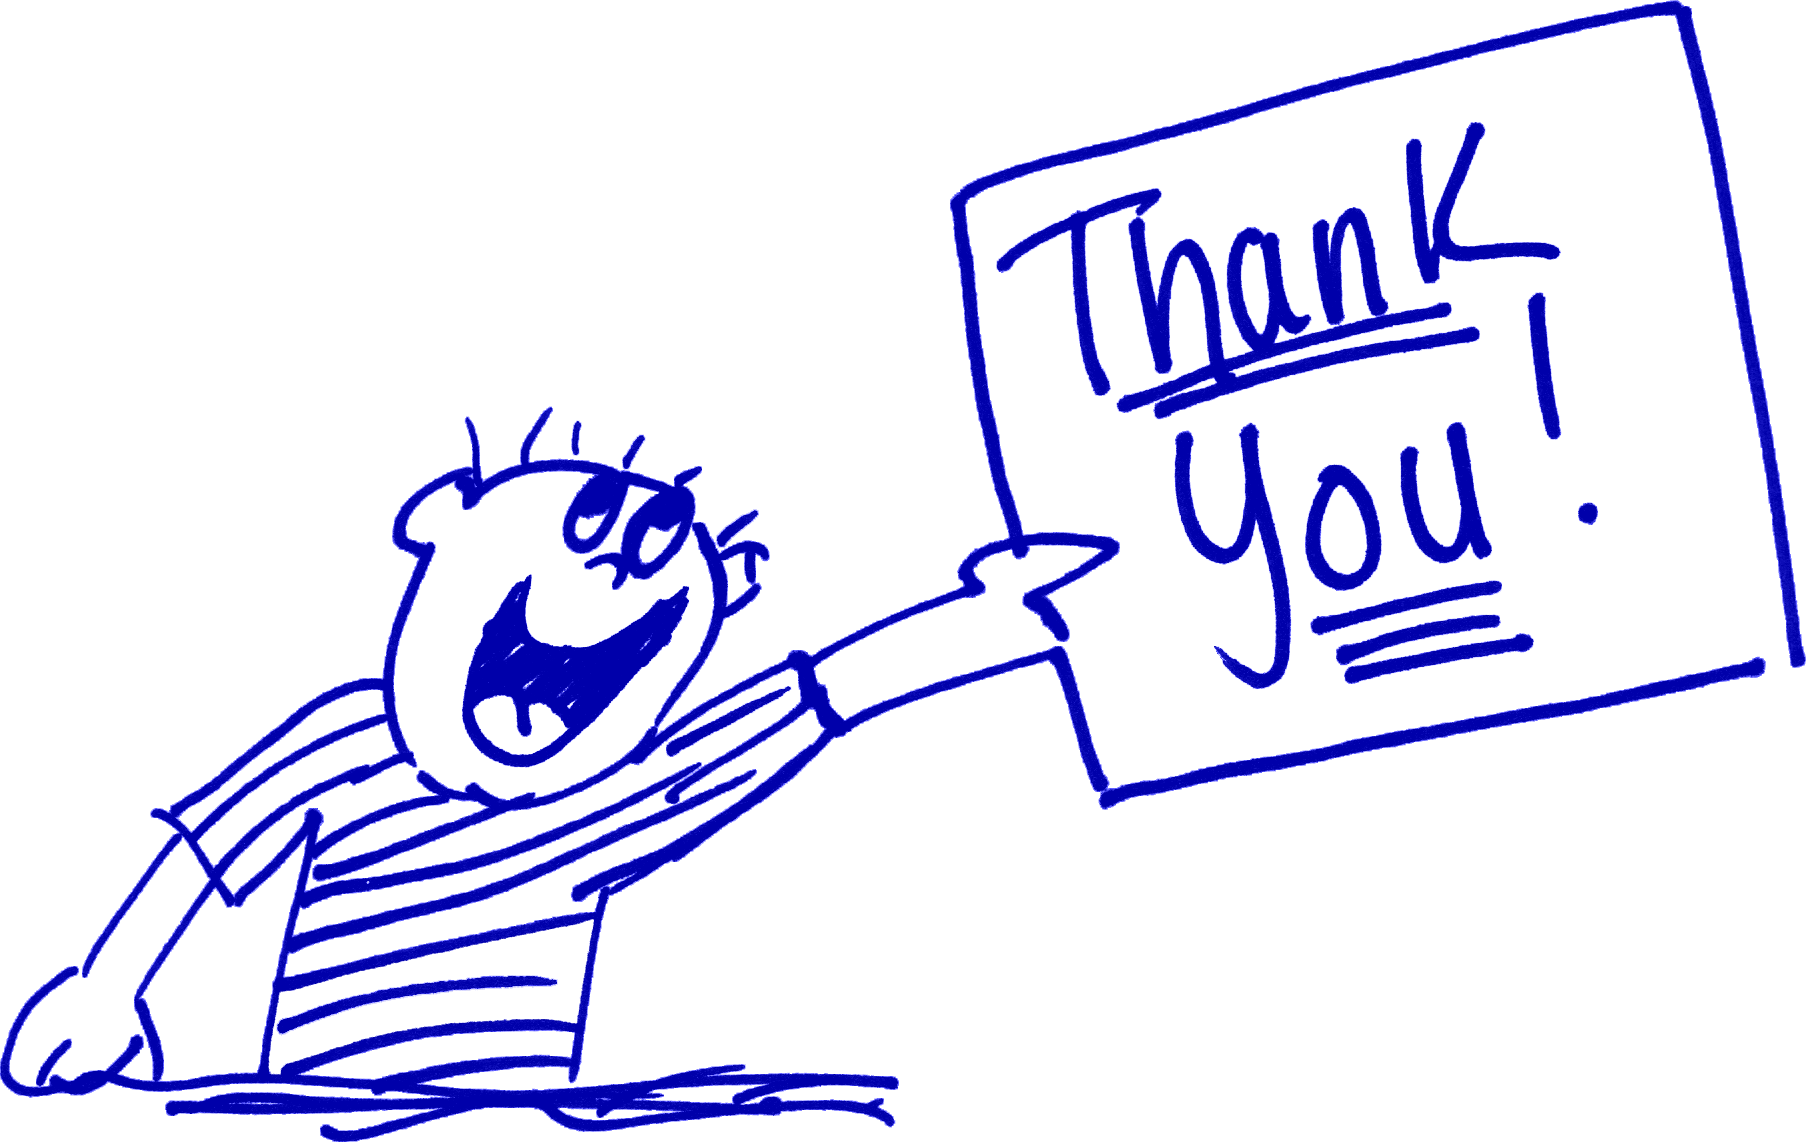 Mother clipart thank you. For watching animated panda